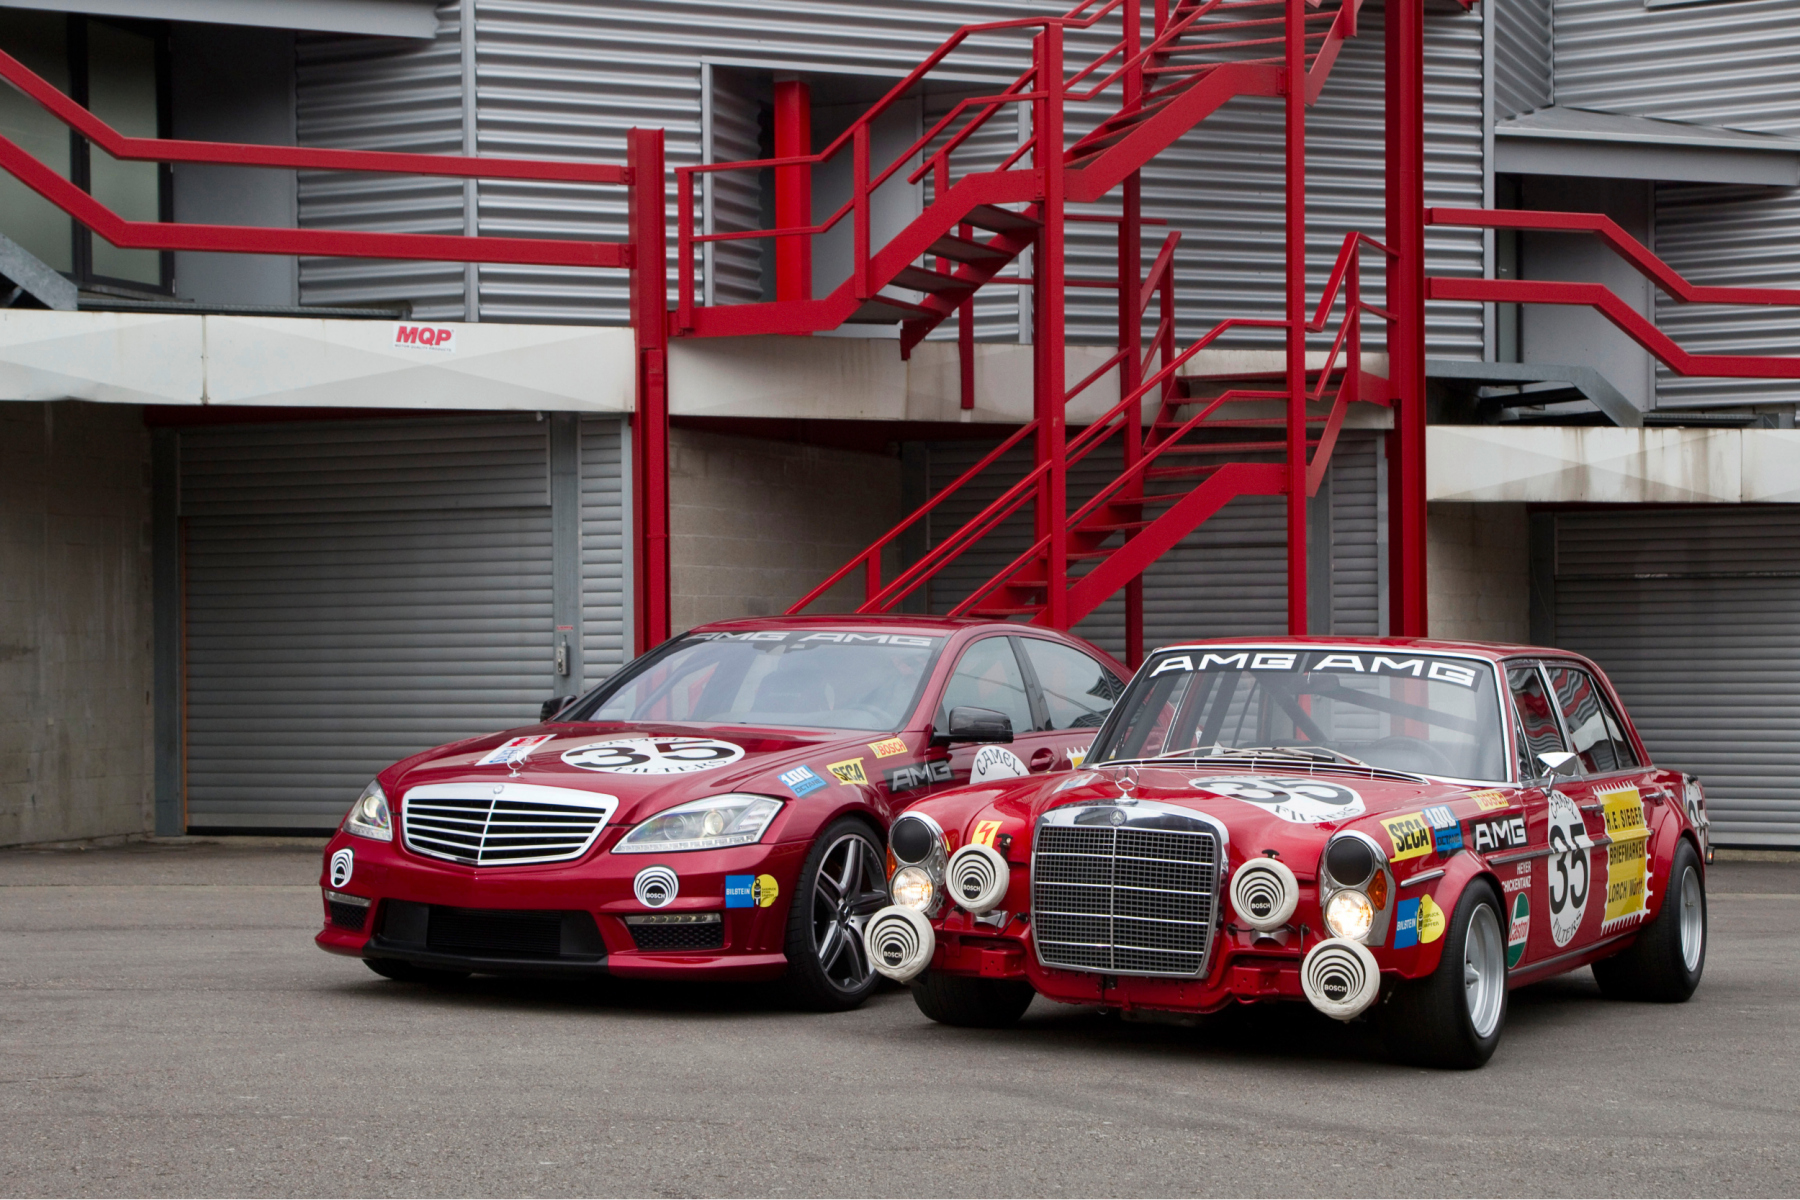 """AMG 300 SEL 6.8 racing touring car based on the Mercedes-Benz 300 SEL 6.3 (W 109) luxury saloon, detailed reconstruction from 2006 (right), and Mercedes-Benz S 63 AMG """"Thirty-Five"""" (W 221, left) with a decal based on the racing touring car of 1971. Photo from 2010."""